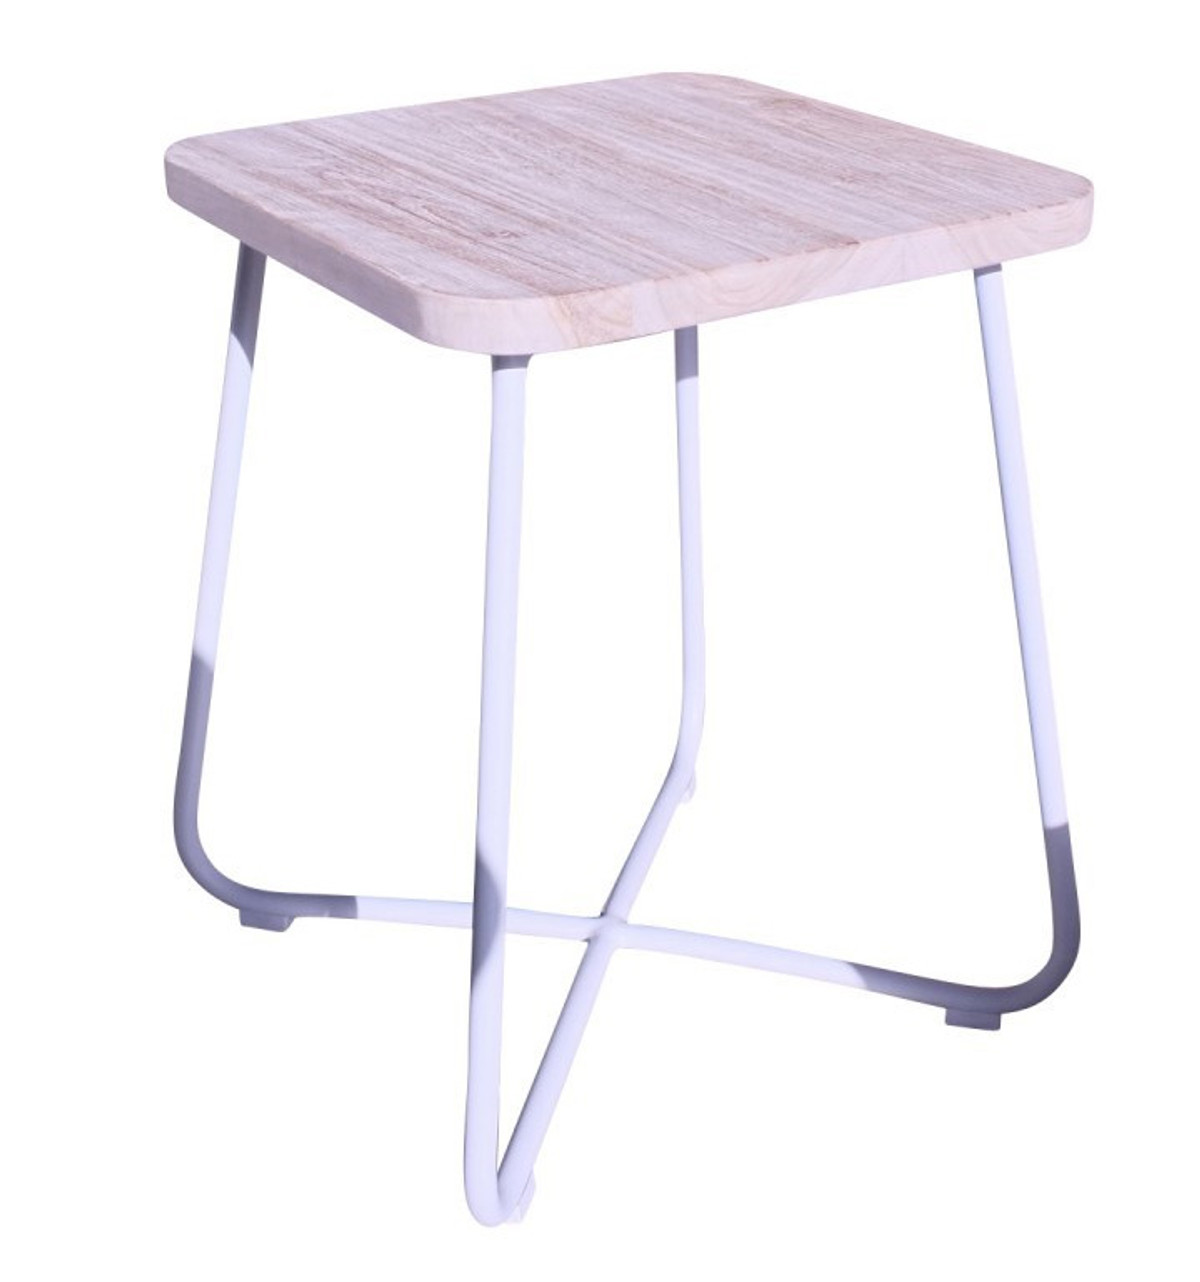 Foxtrot Outdoor Teak And Aluminium Side Table - Teak and aluminium outdoor table